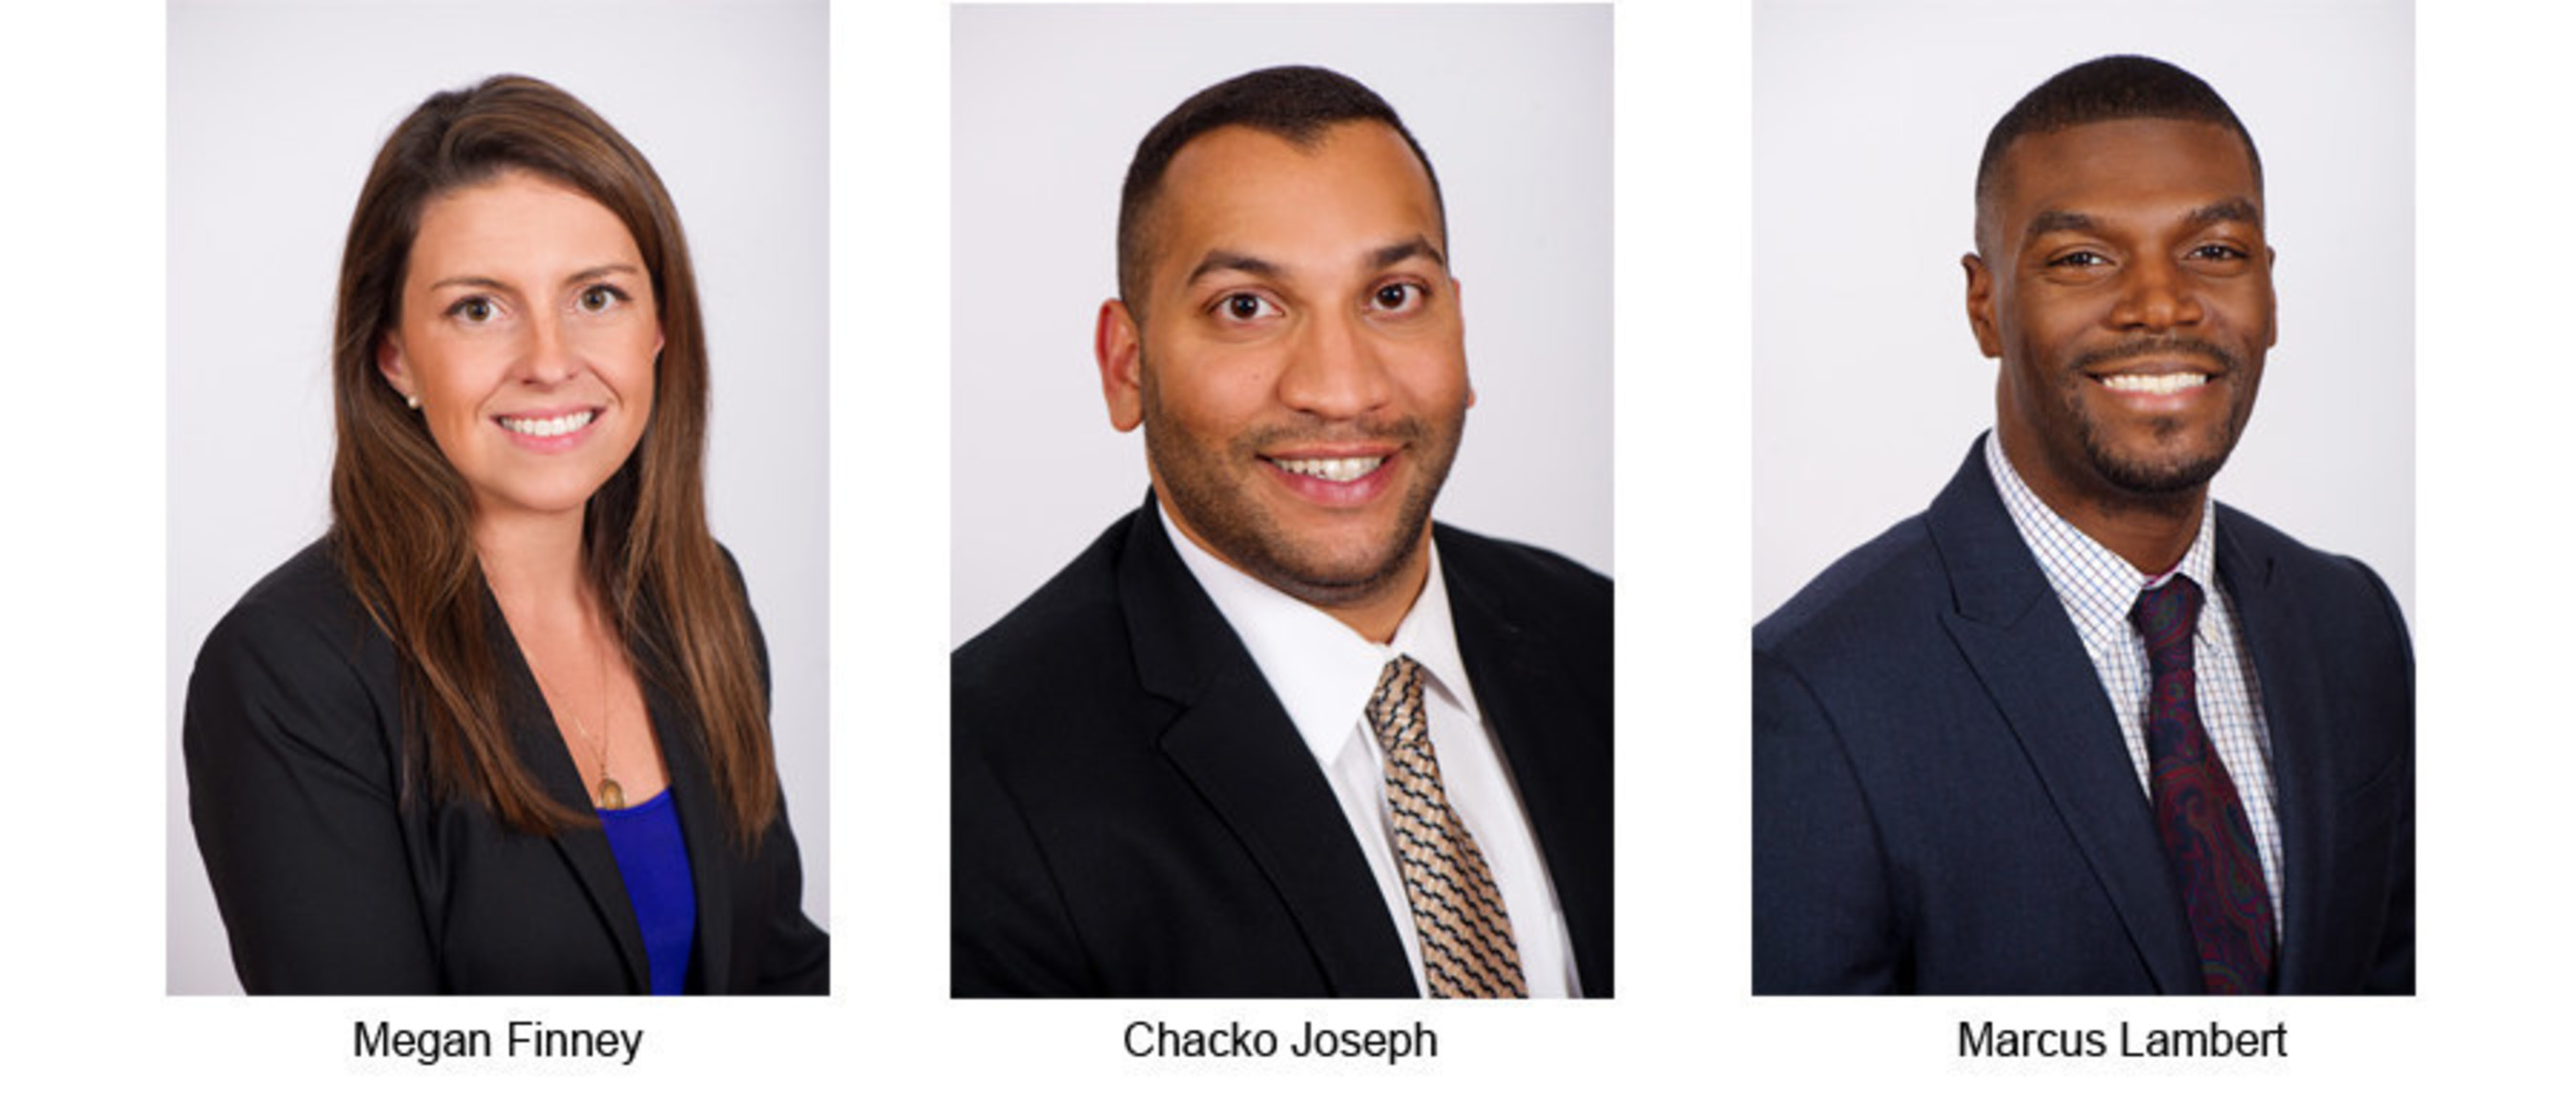 The Siegfried Group Welcomes New Professionals in Operations for New Hire Orientation